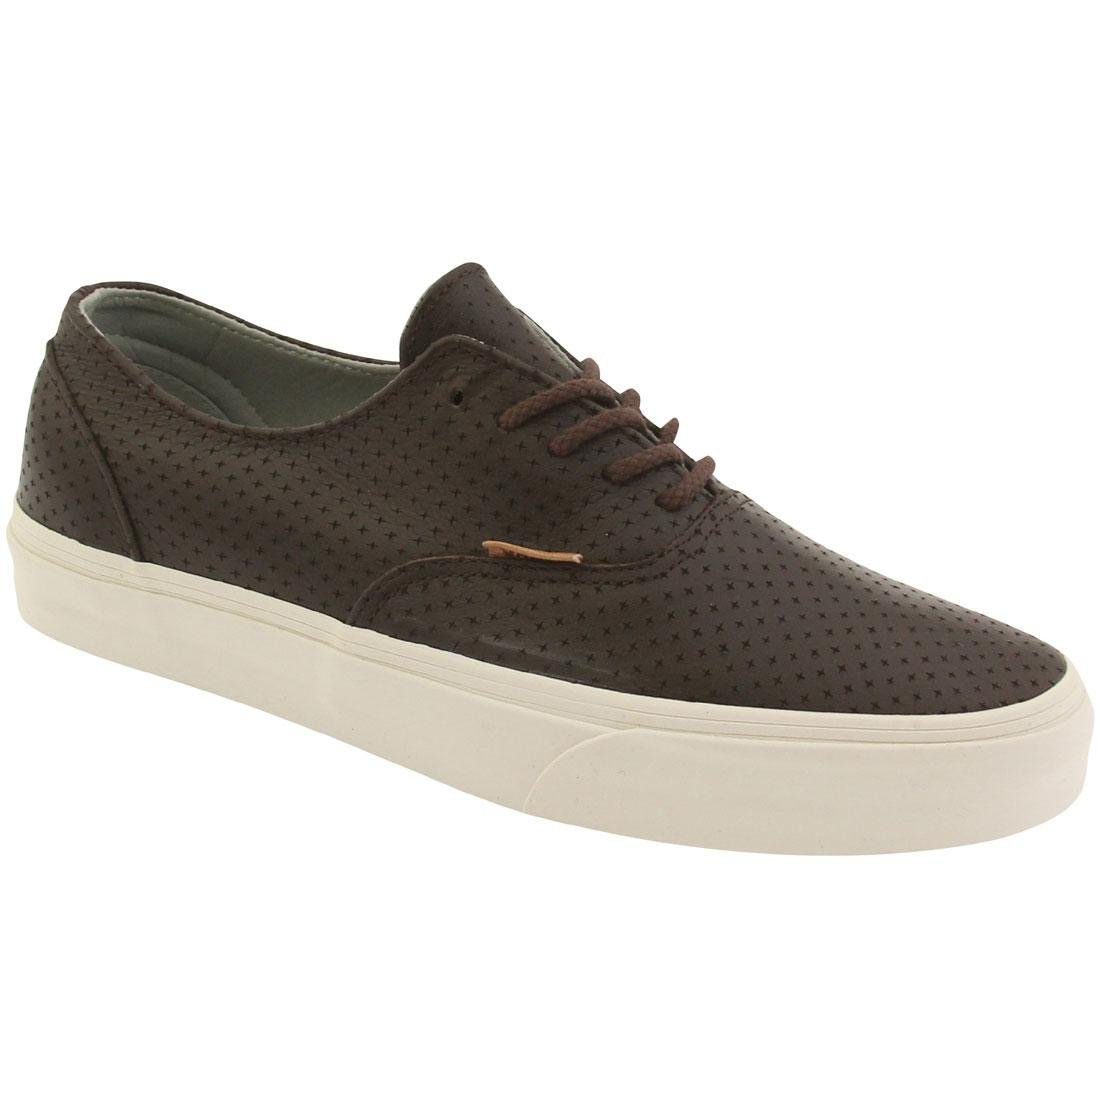 1e006f7fc0 Vans Men s Era Decon + Leather Emboss Ankle-high Skateboarding Shoe Seal  Brown 11 D(M) US  Buy Online at Low Prices in India - Amazon.in